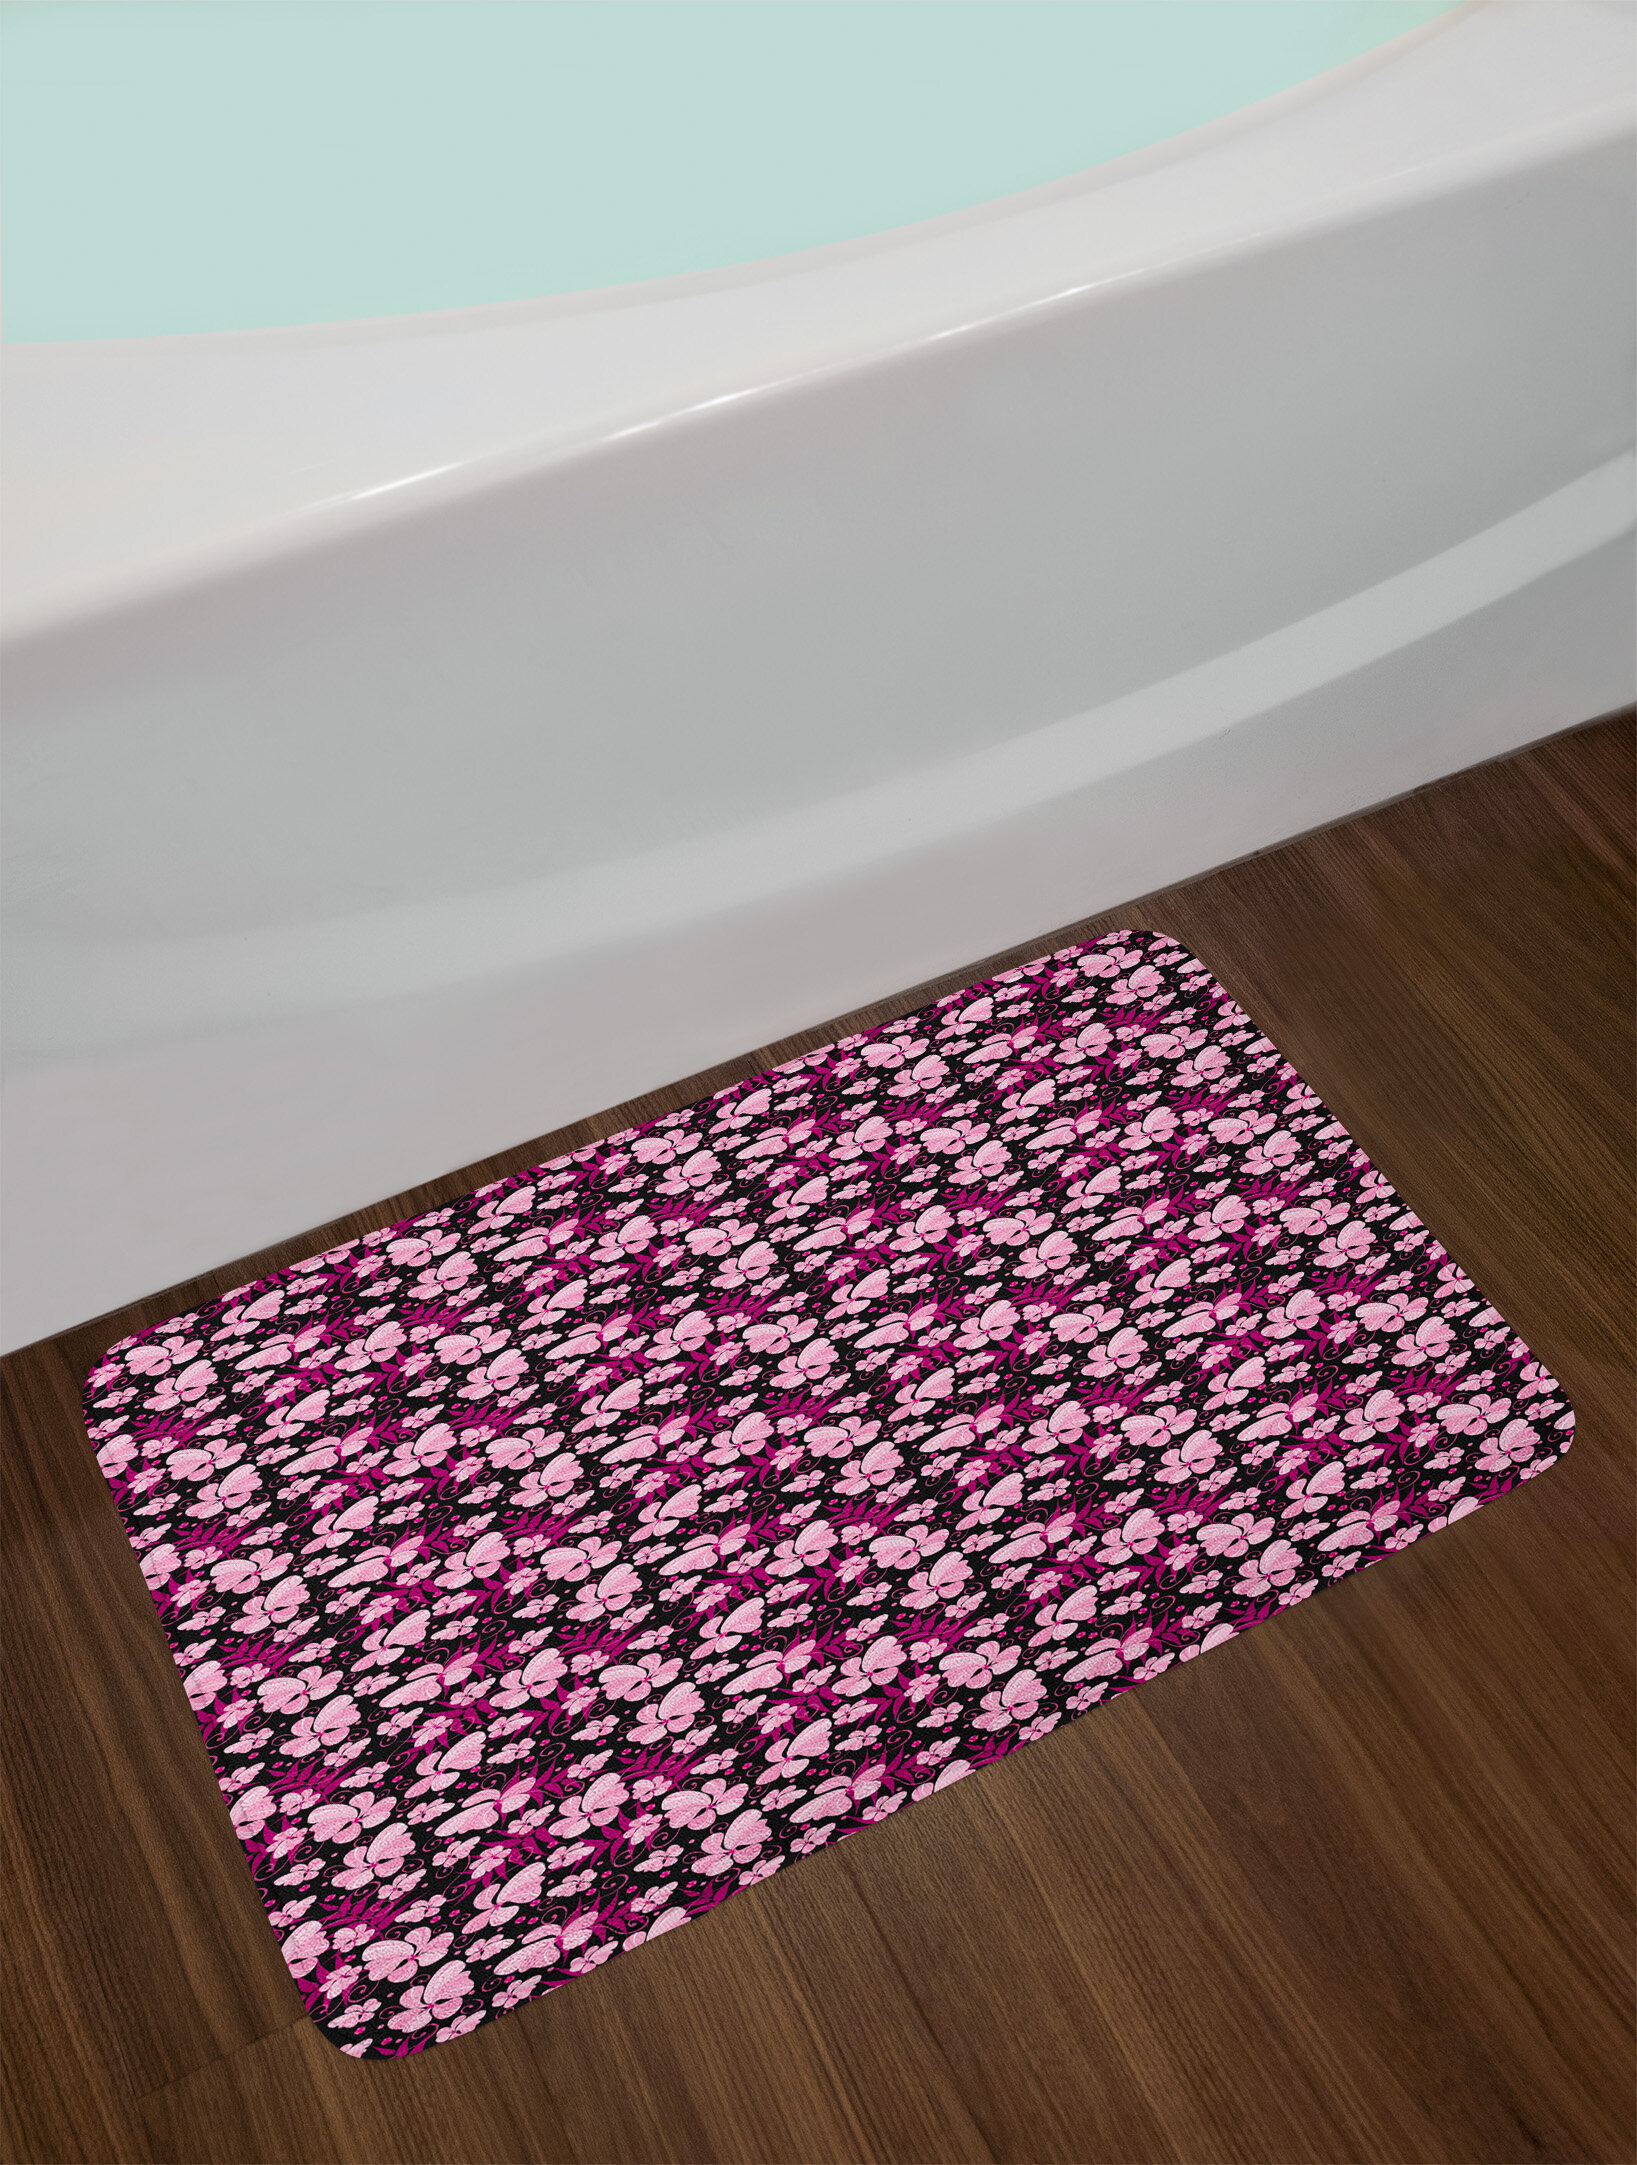 4b7e4c749056 East Urban Home Ambesonne Floral Bath Mat by